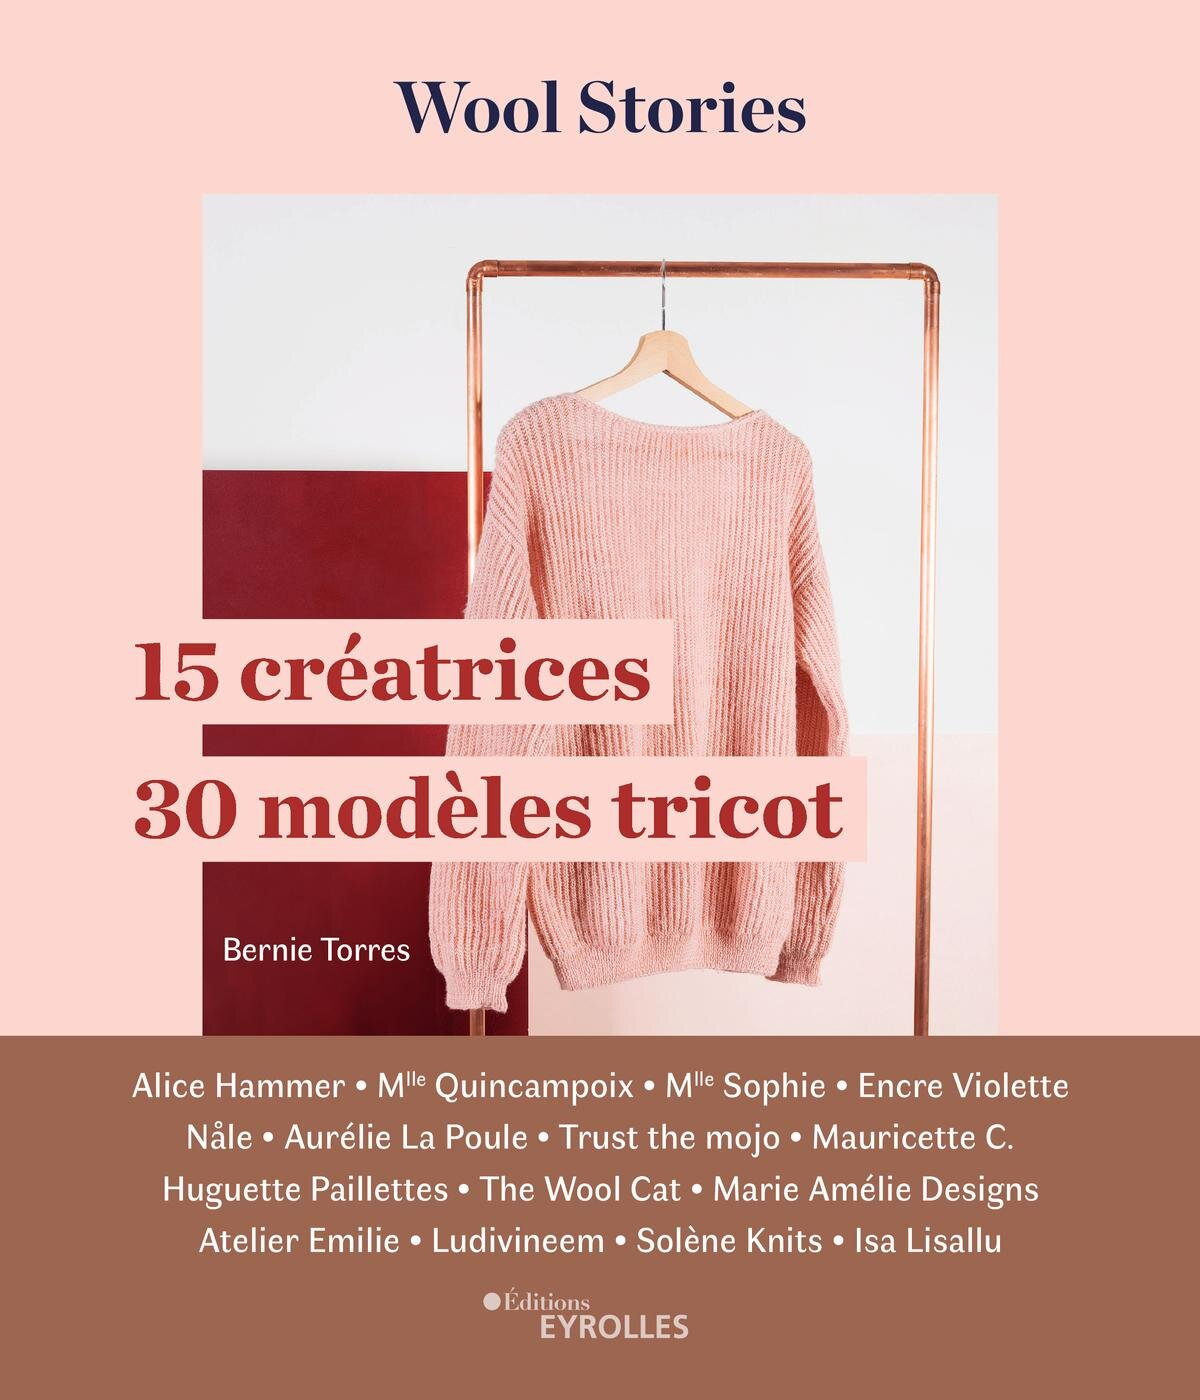 wool-stories-bernie-torres